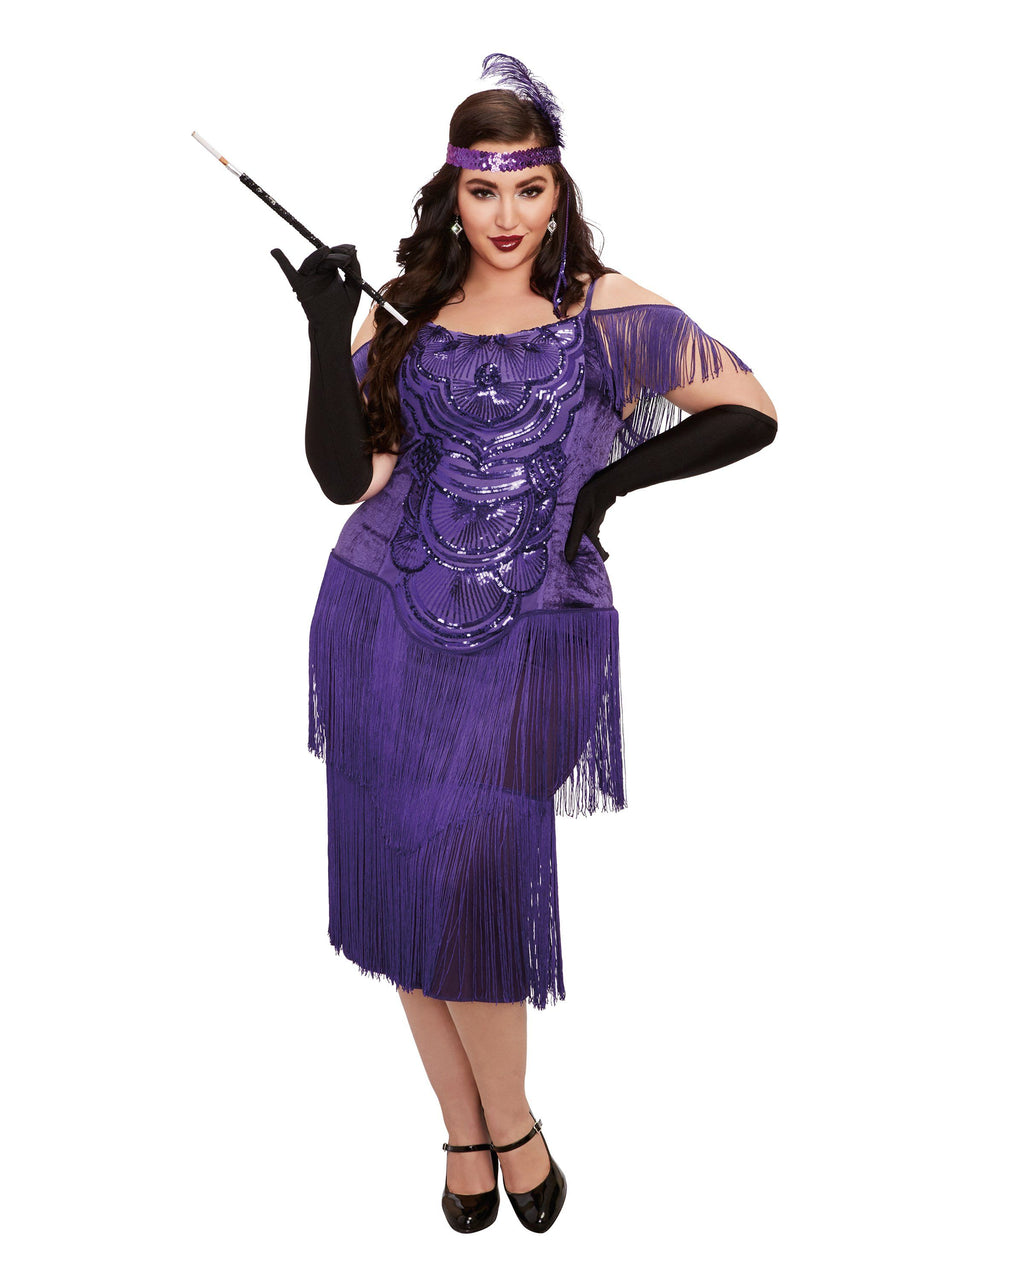 Plus Size Miss Ritz Women's Costume Dreamgirl Costume